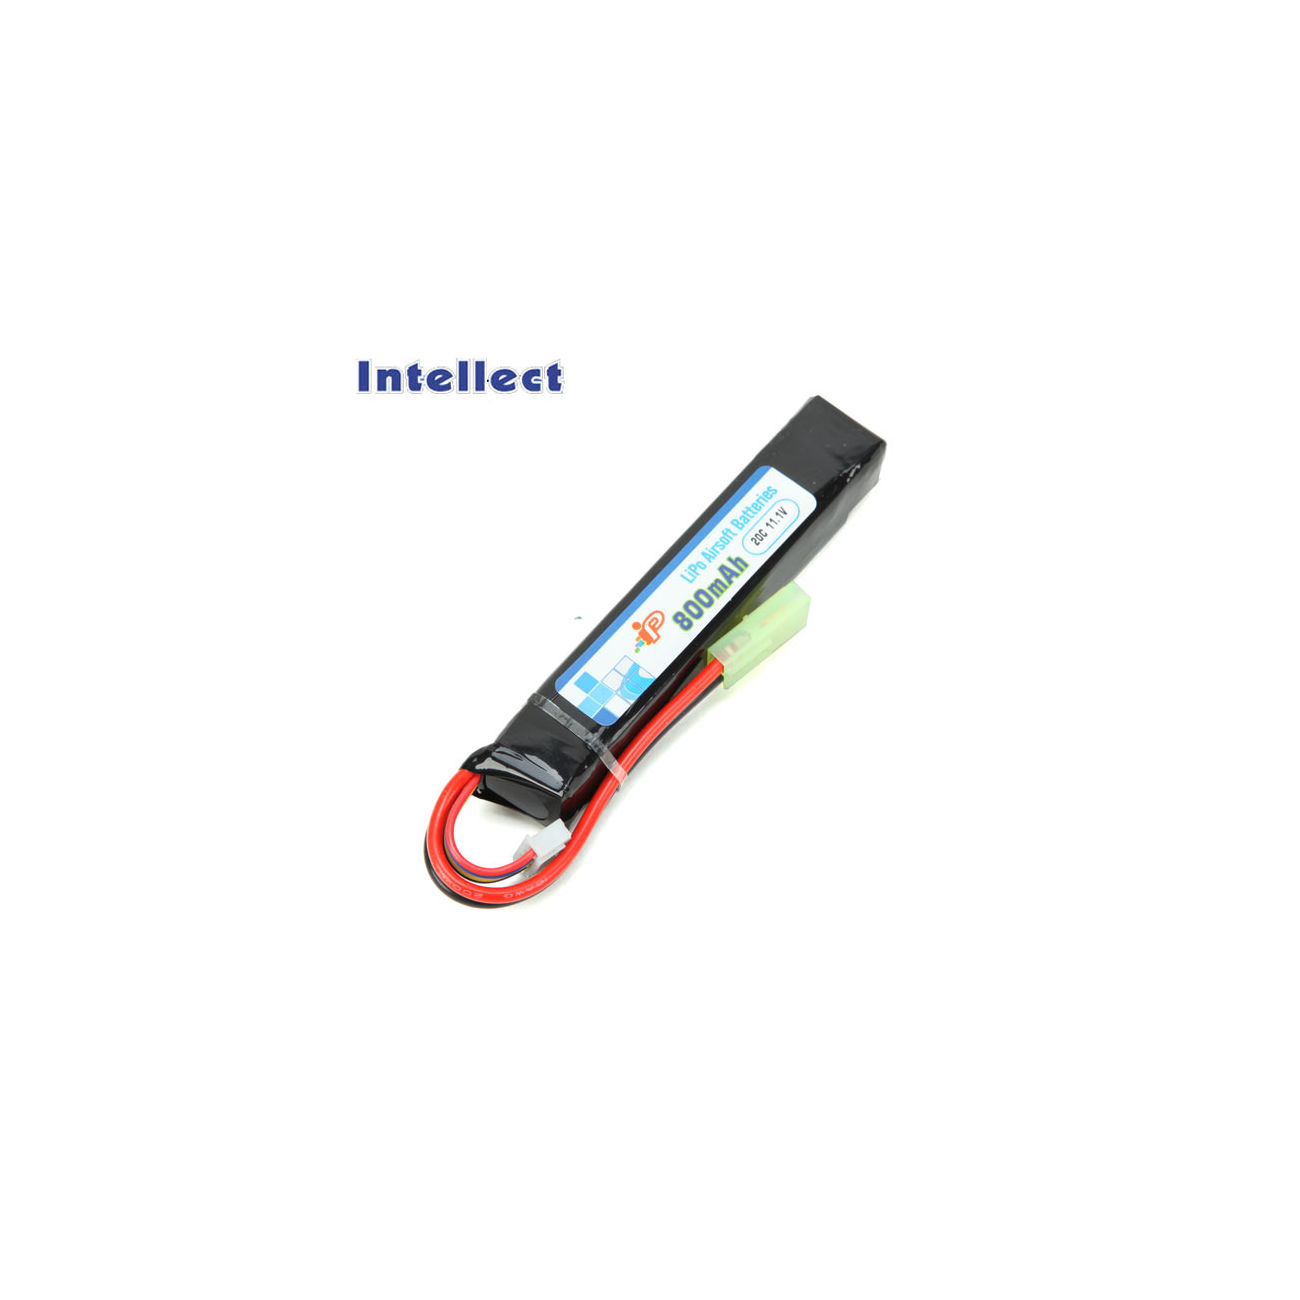 Intellect LiPo Akku 11,1V 800mAh 20C Stock-Tube Version 0